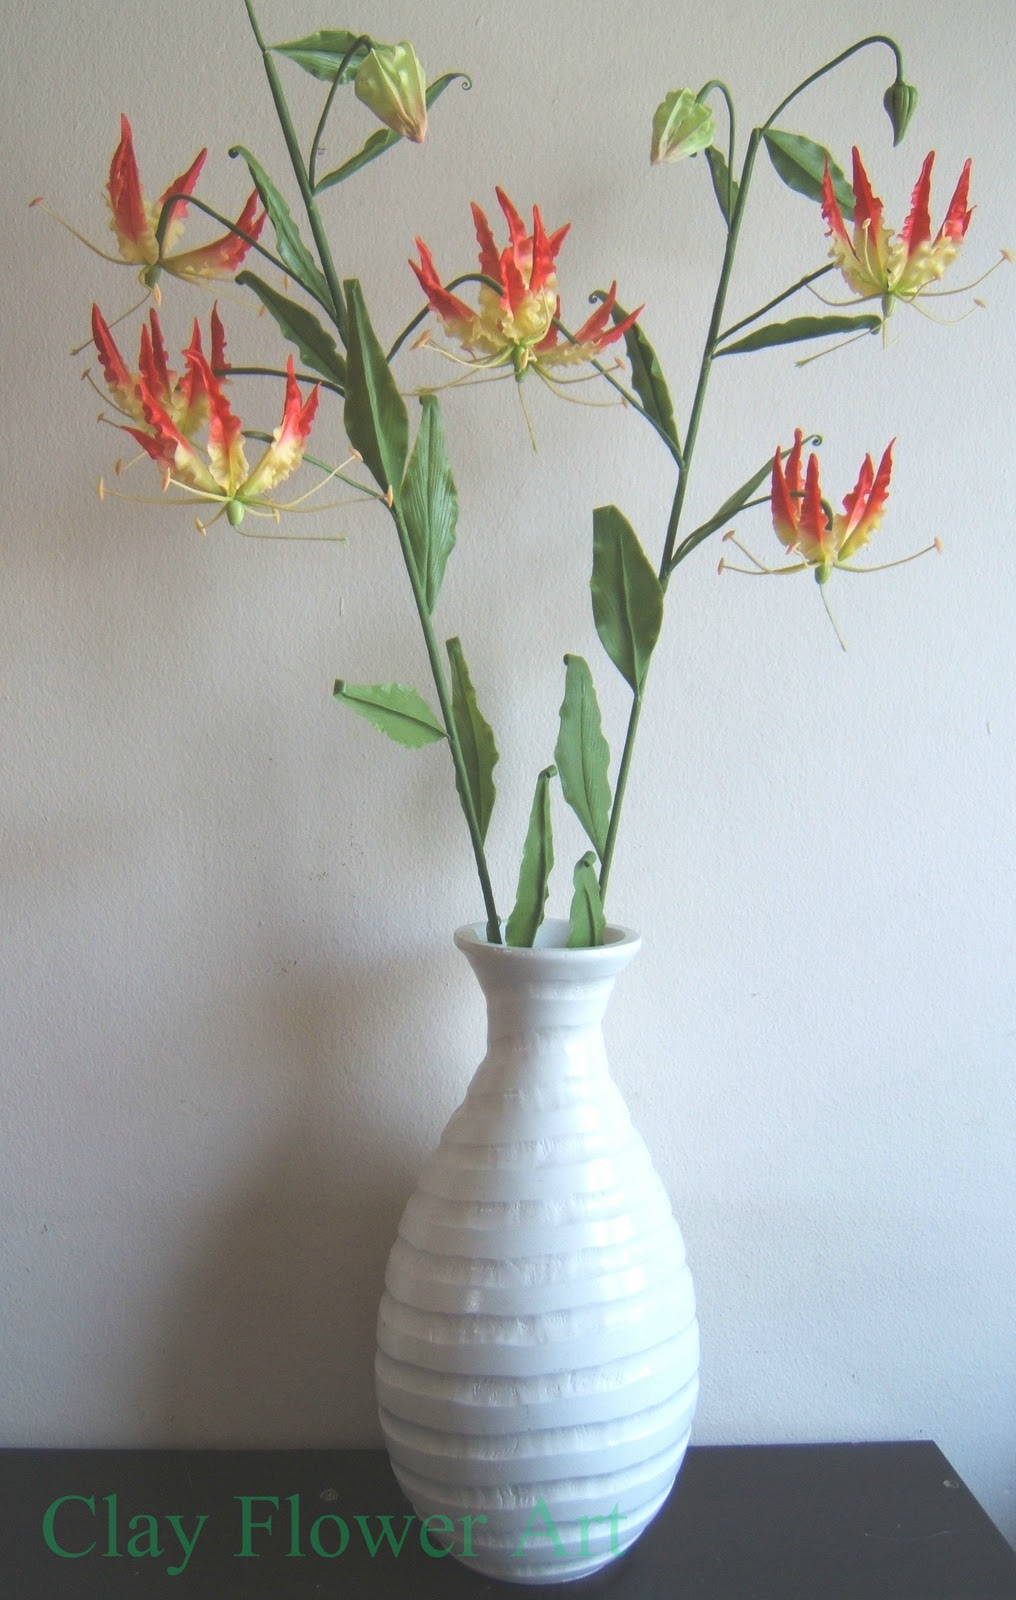 Climbing lily gloriosa clay flower art gloriosa is the state flower of tamil nadu also known as senganthal malar in tamil it is found in tropical africa and asia and are adapted to summer izmirmasajfo